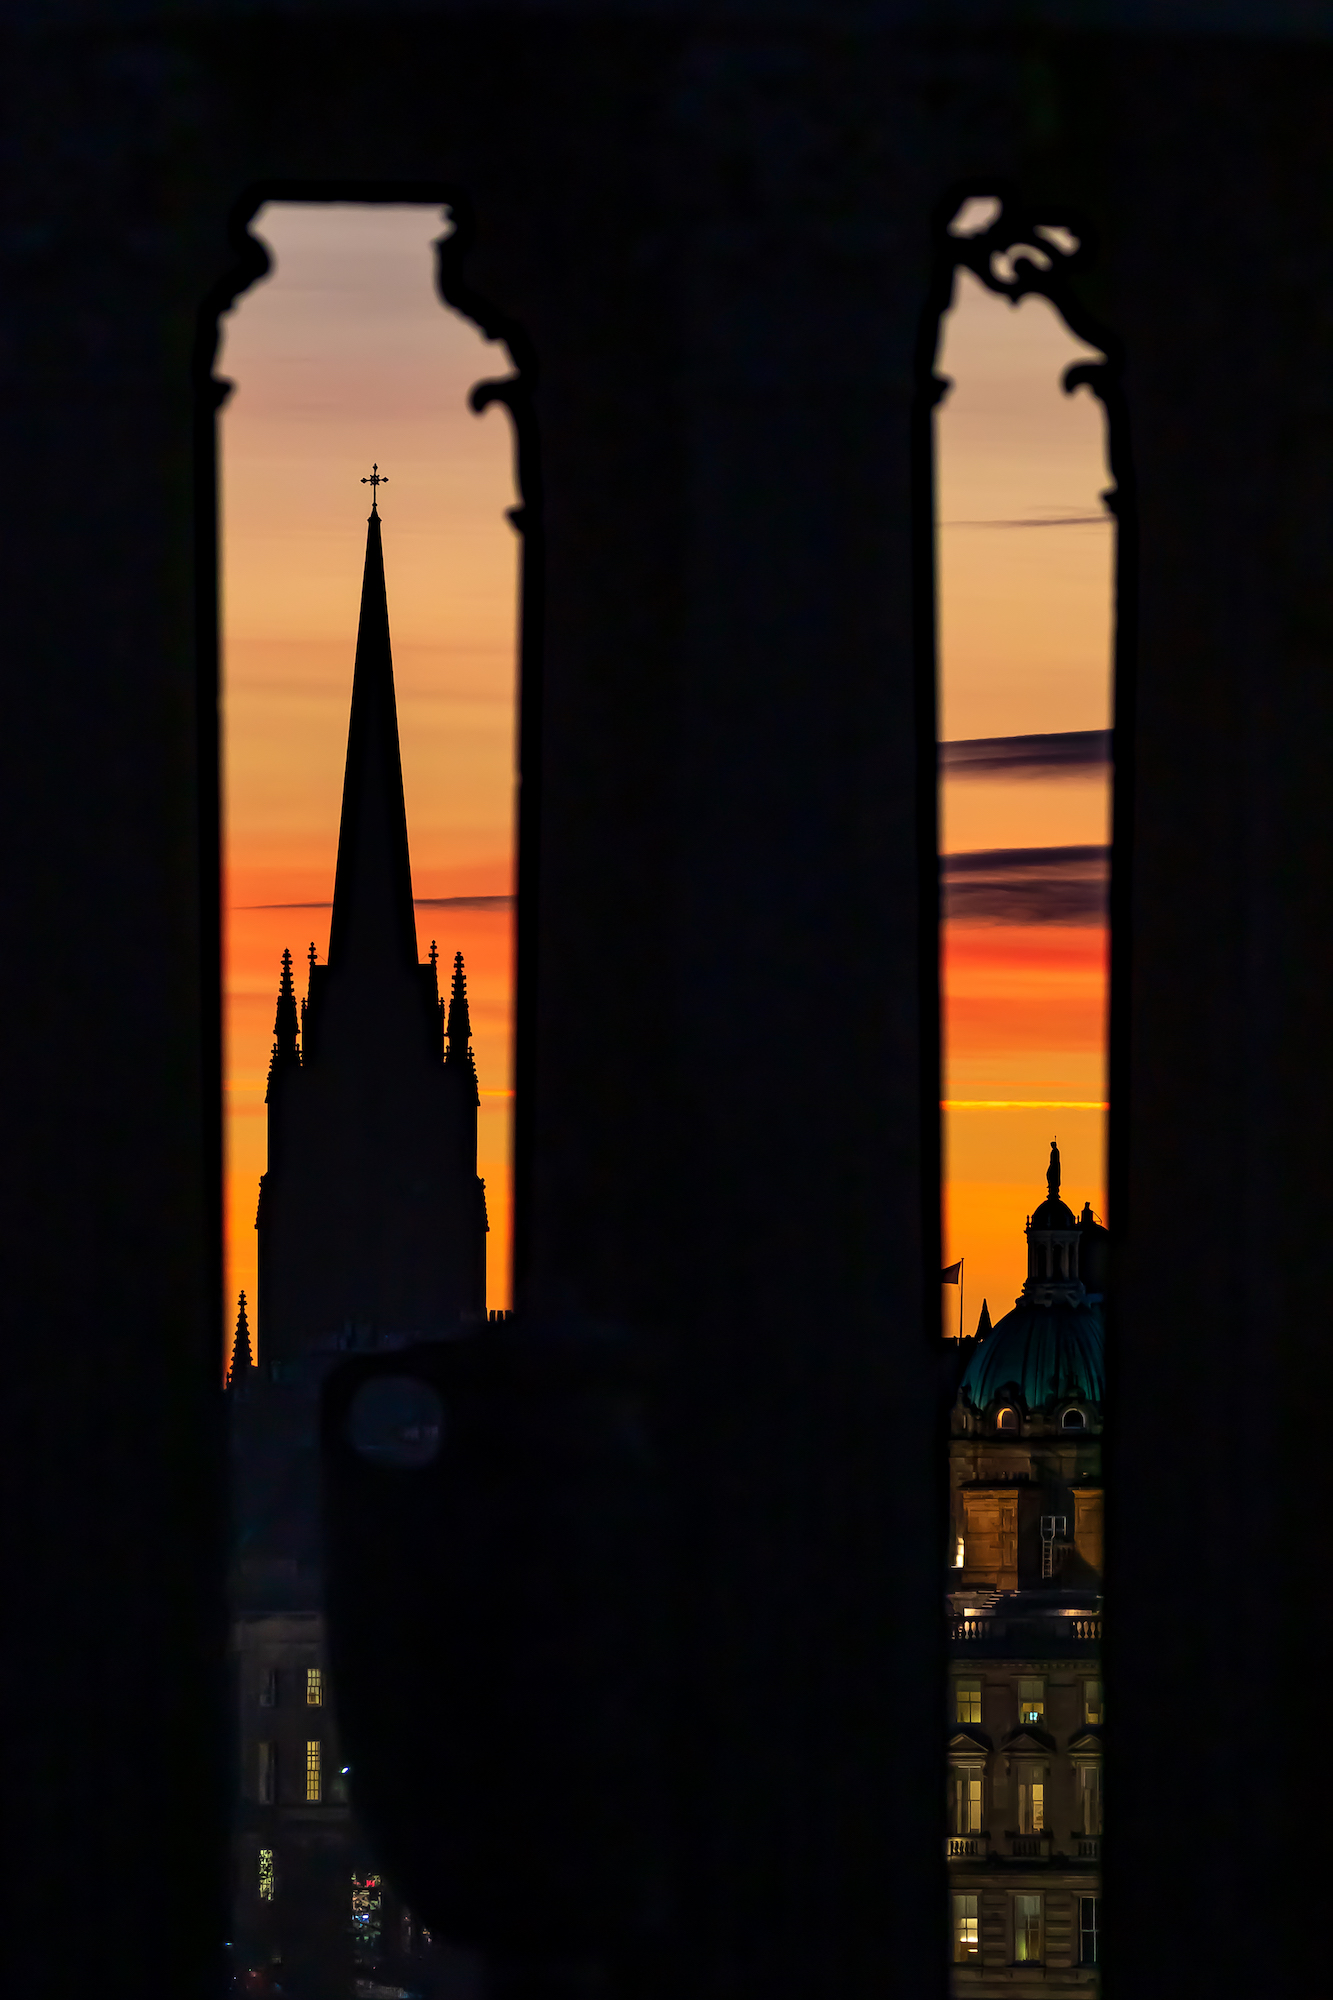 (1386) The Gothic Spire of The Hub Arts & Events Centre and Statue on top of Lloyds Banking Group Head Office through the Dugald Stewart Monument on Calton Hill, Edinburgh, Scotland. Copyright David Wheater.jpg